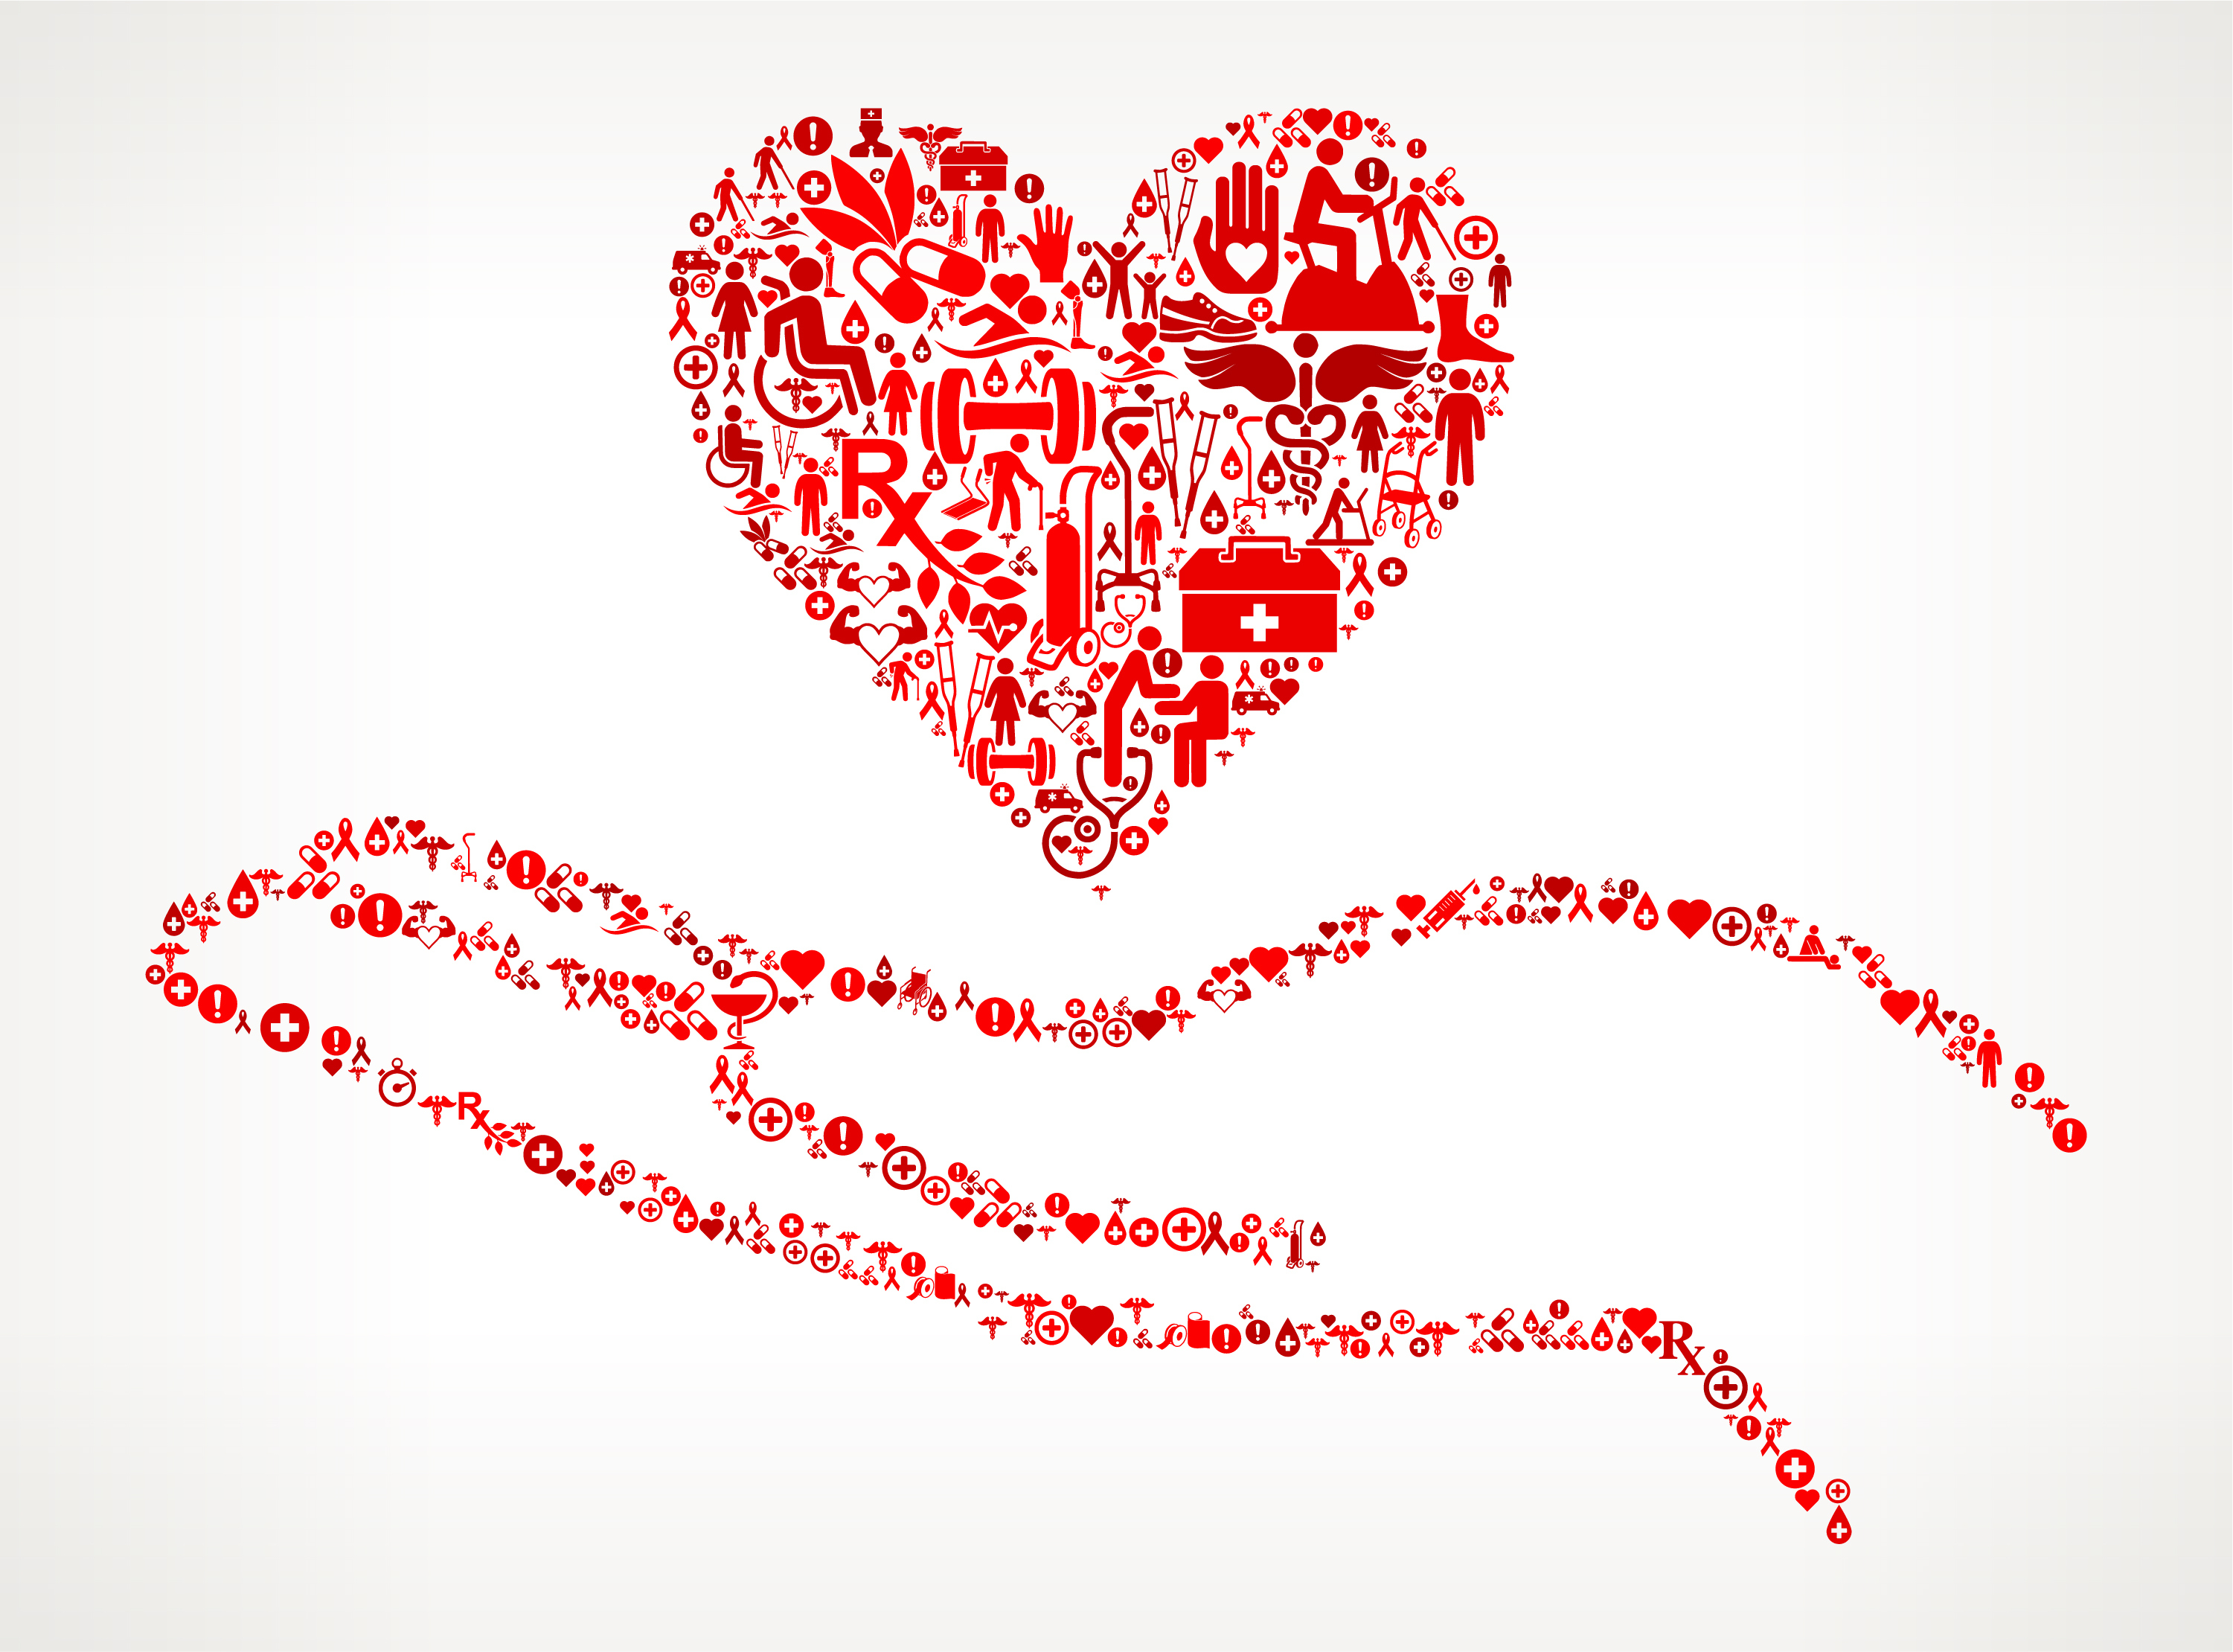 Holding Heart Medical Rehabilitation Physical Therapy